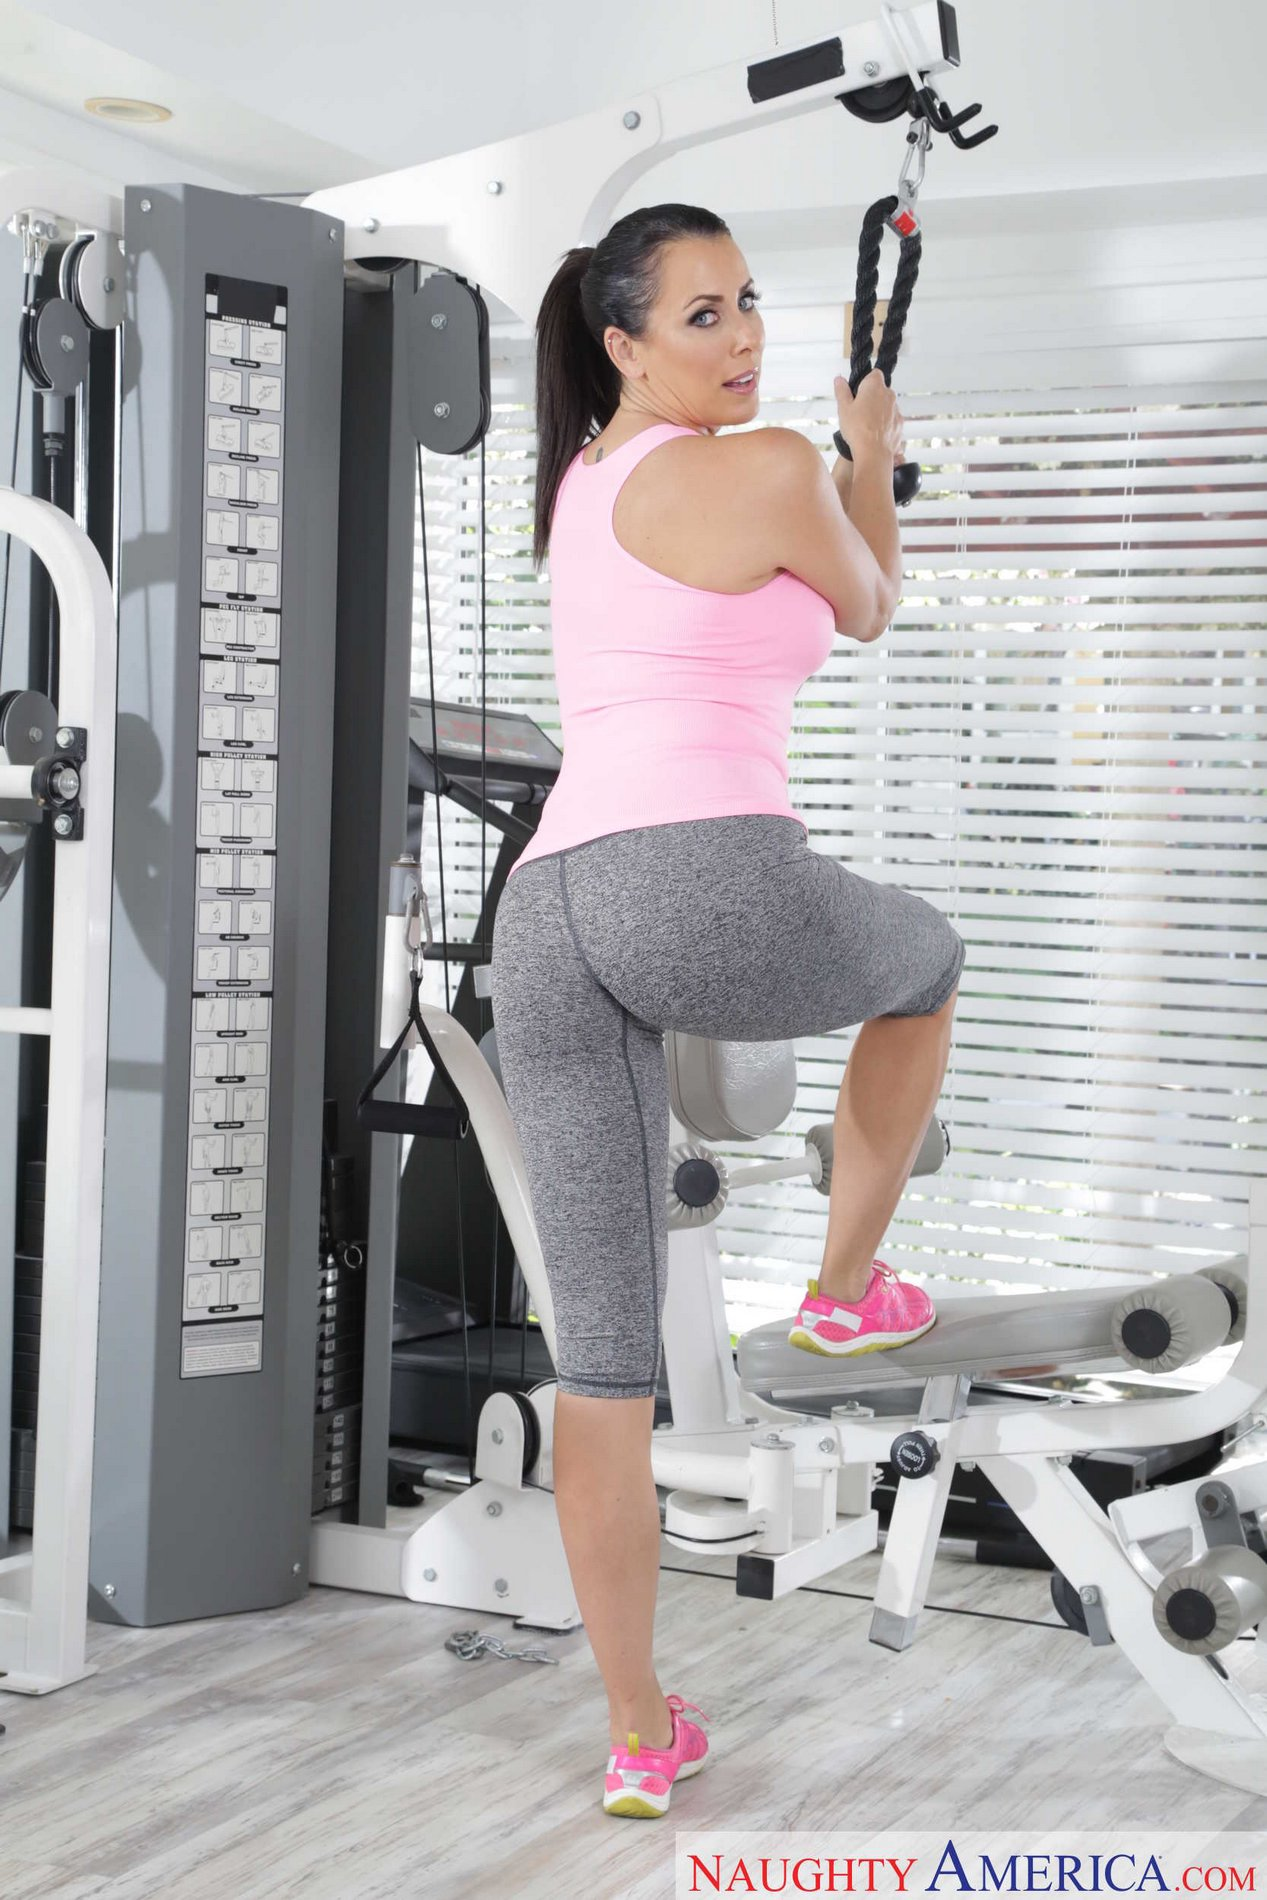 ANNABELLE: Milf at the gym